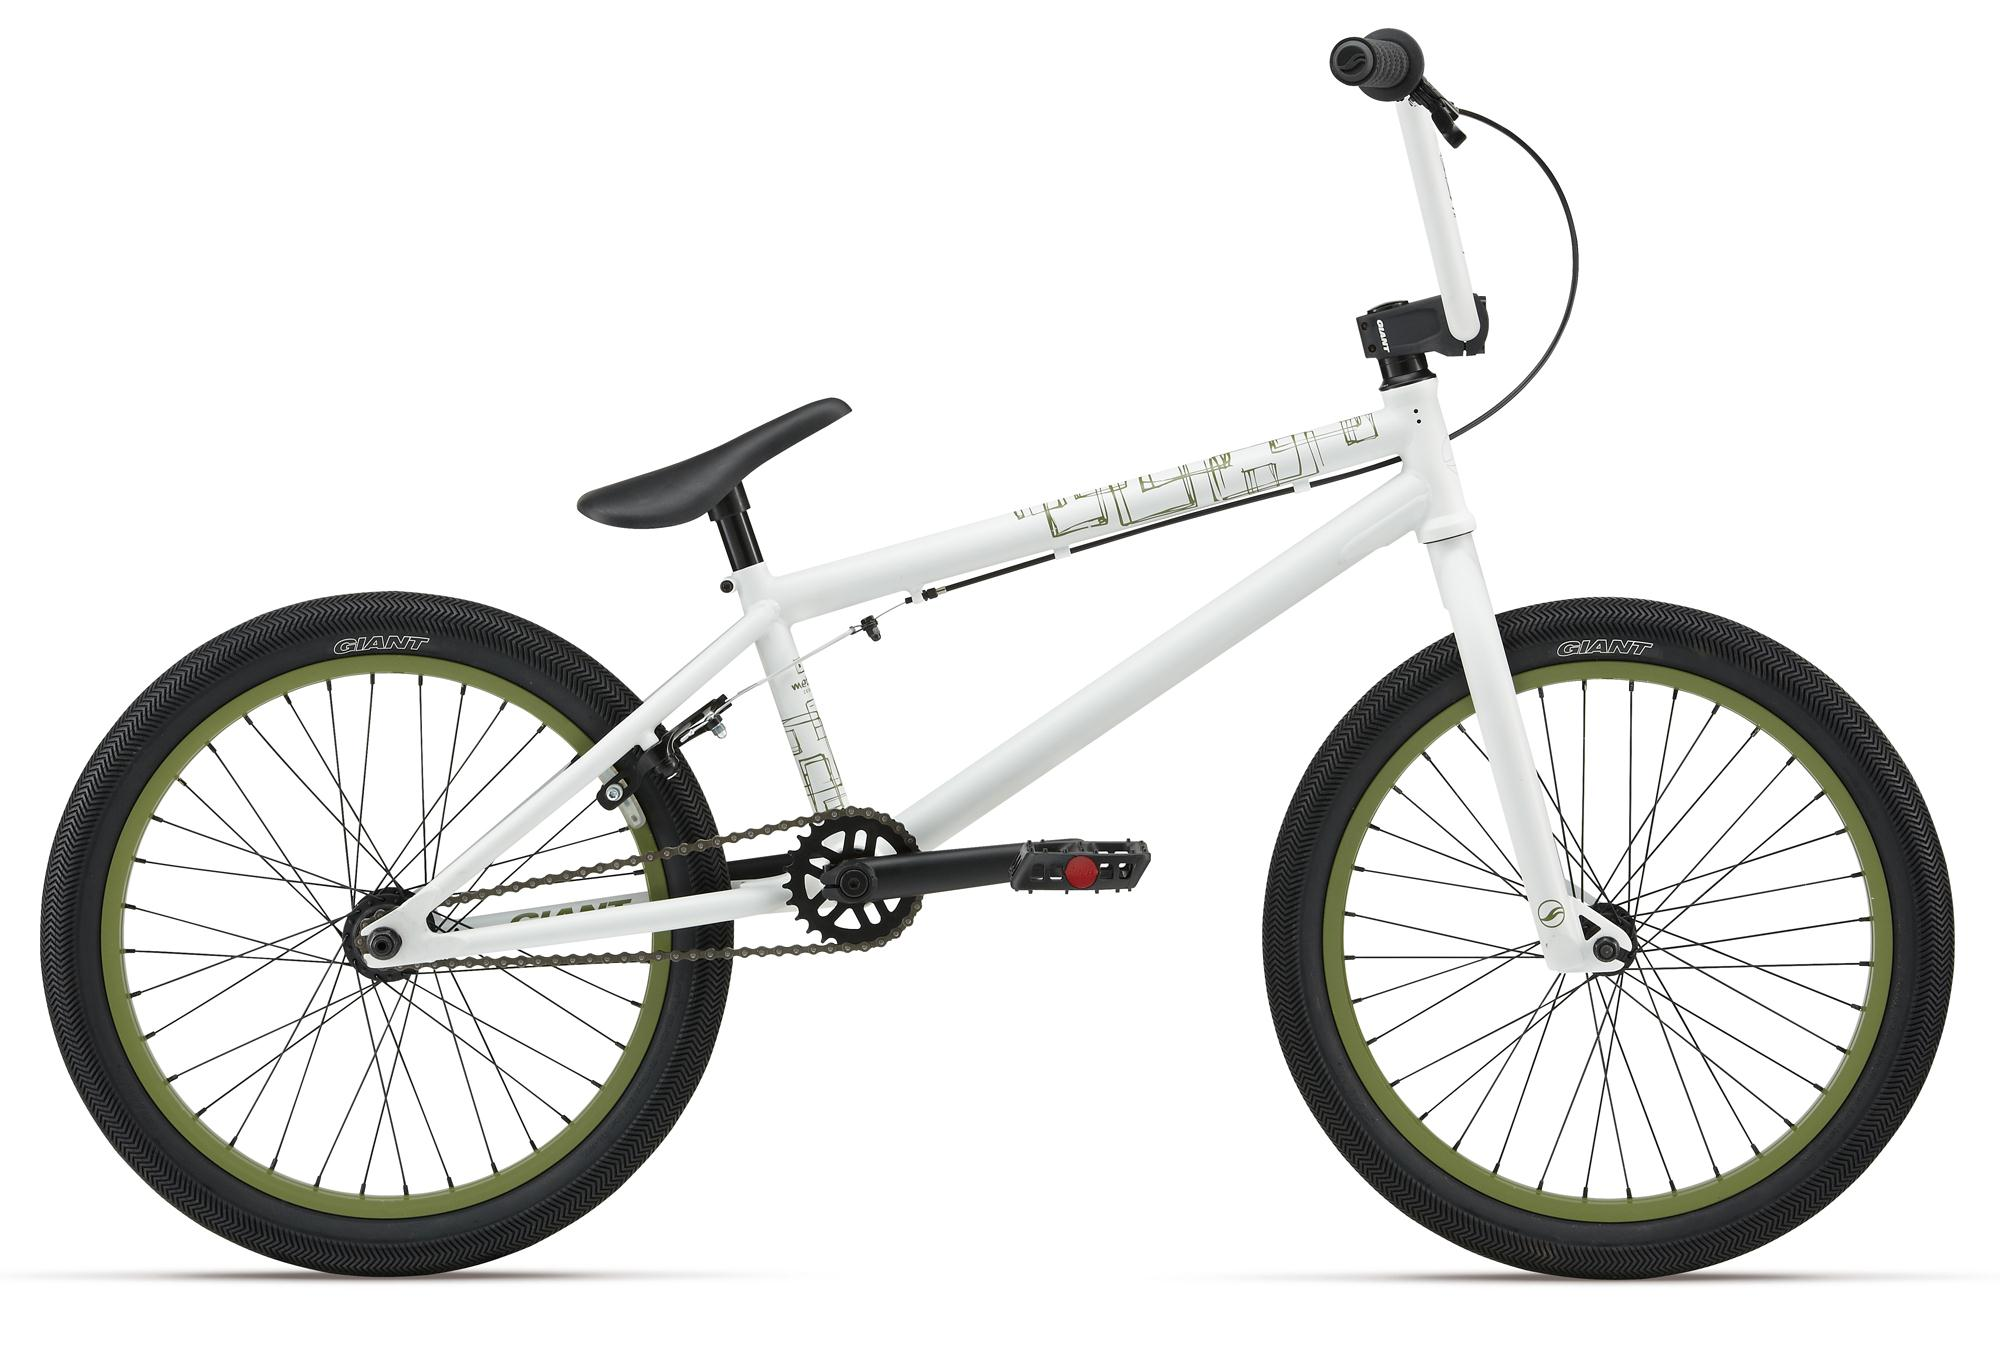 http://www.giant-bicycles.com/_generated/_generated_ru/bikes/models/images/2000/2012/Method_02_white.jpg